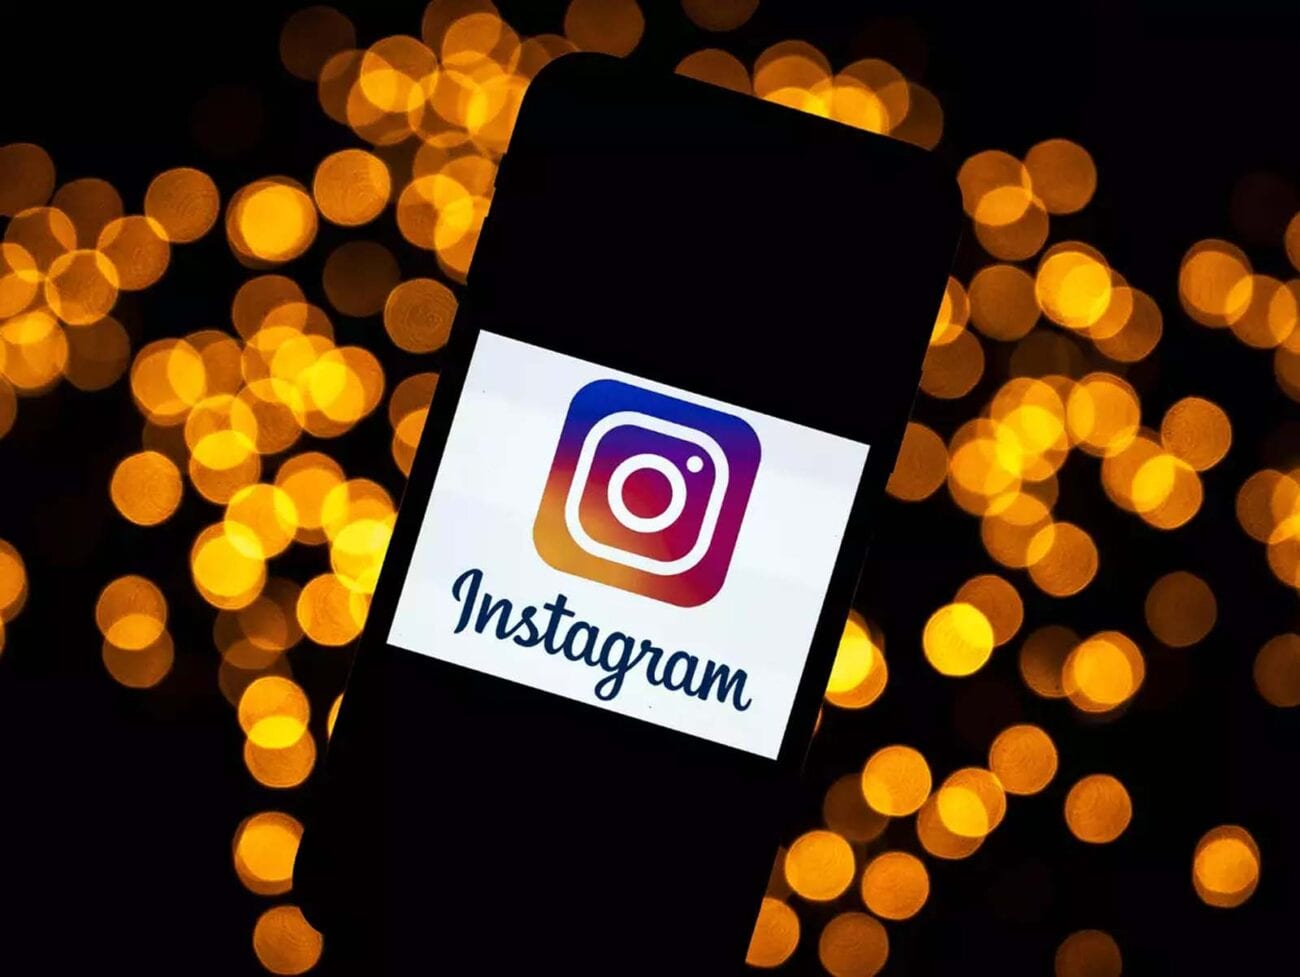 Increasing the number of followers you have on a social media app isn't always easy. Here are some ways to get more engagement on Instagram.